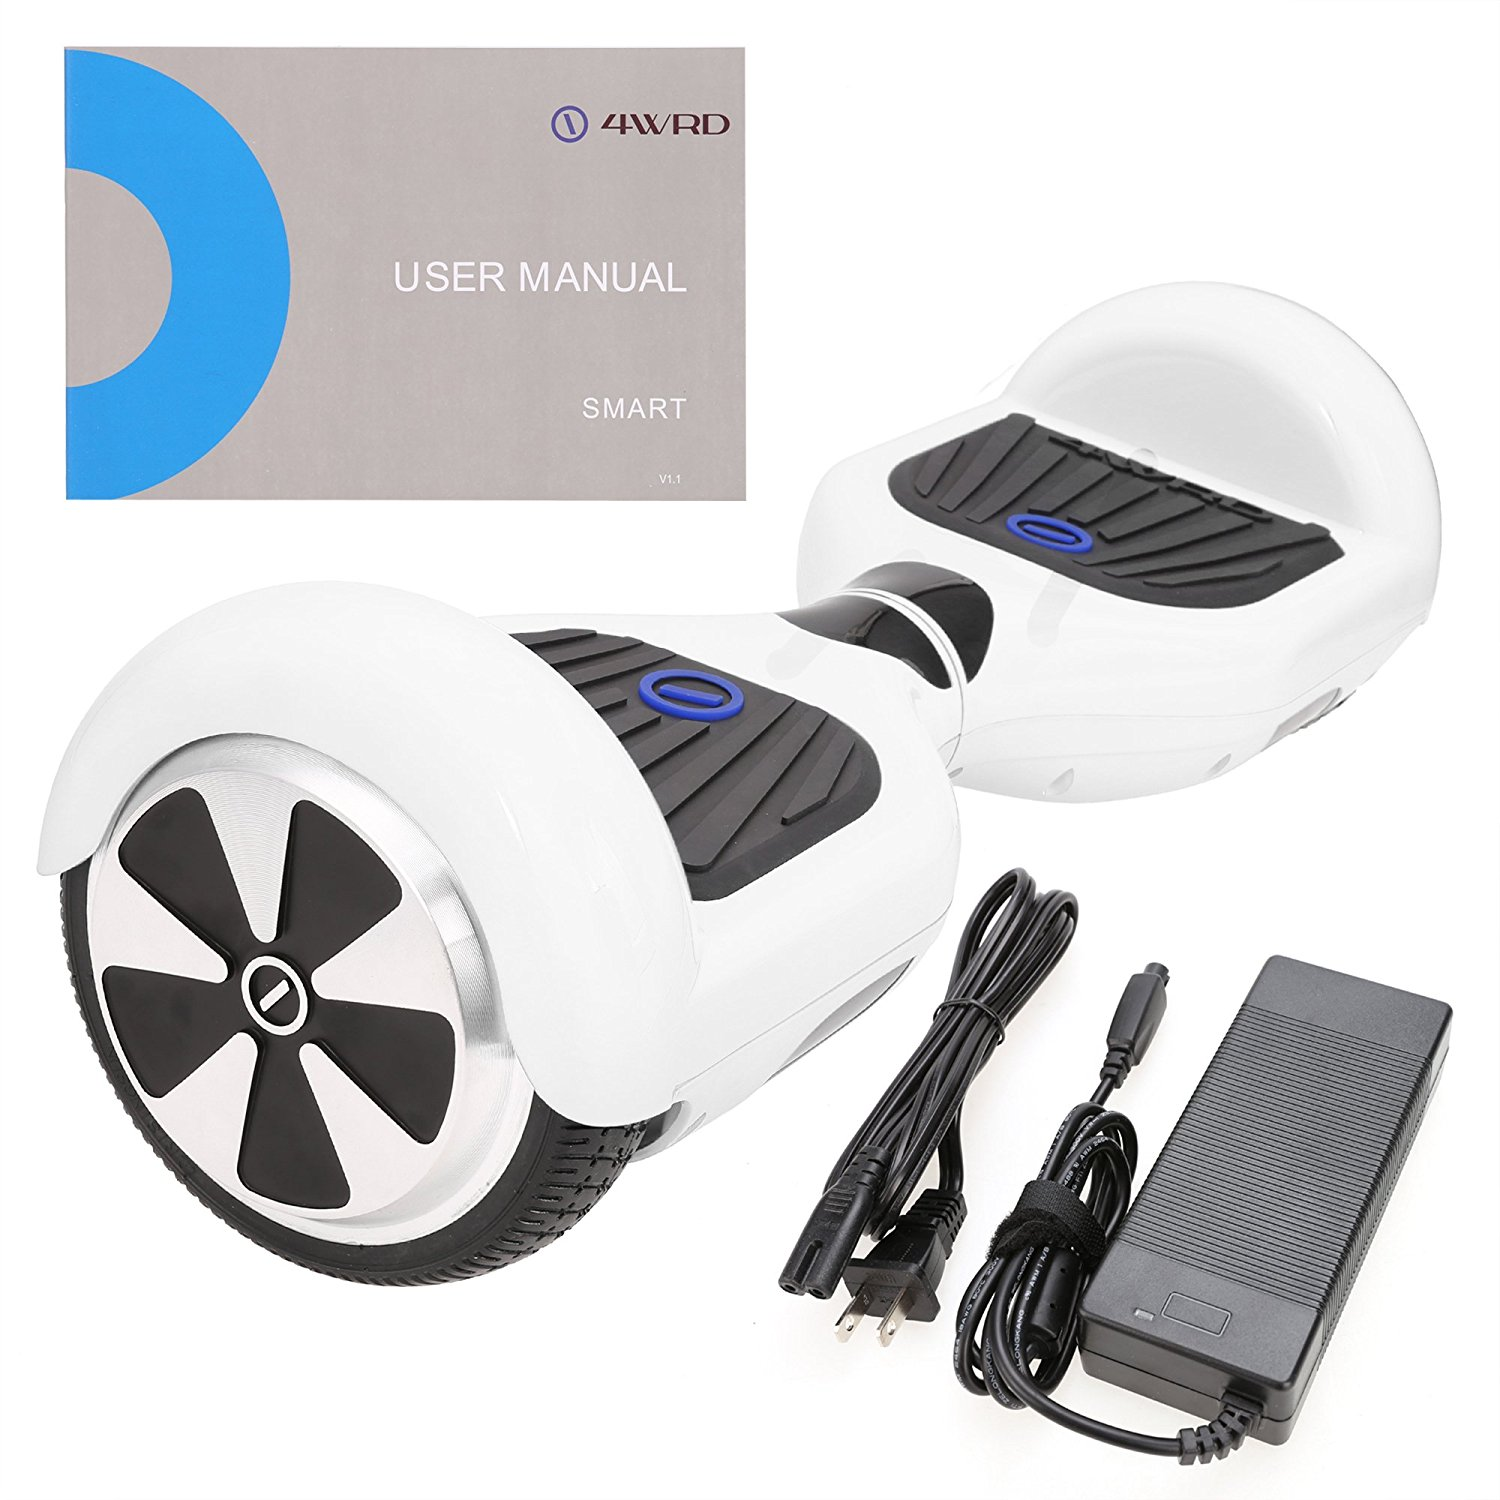 SURFUS Smart S - UL 2272 Certified Hoverboard - Electric Balance hoverboard (White)